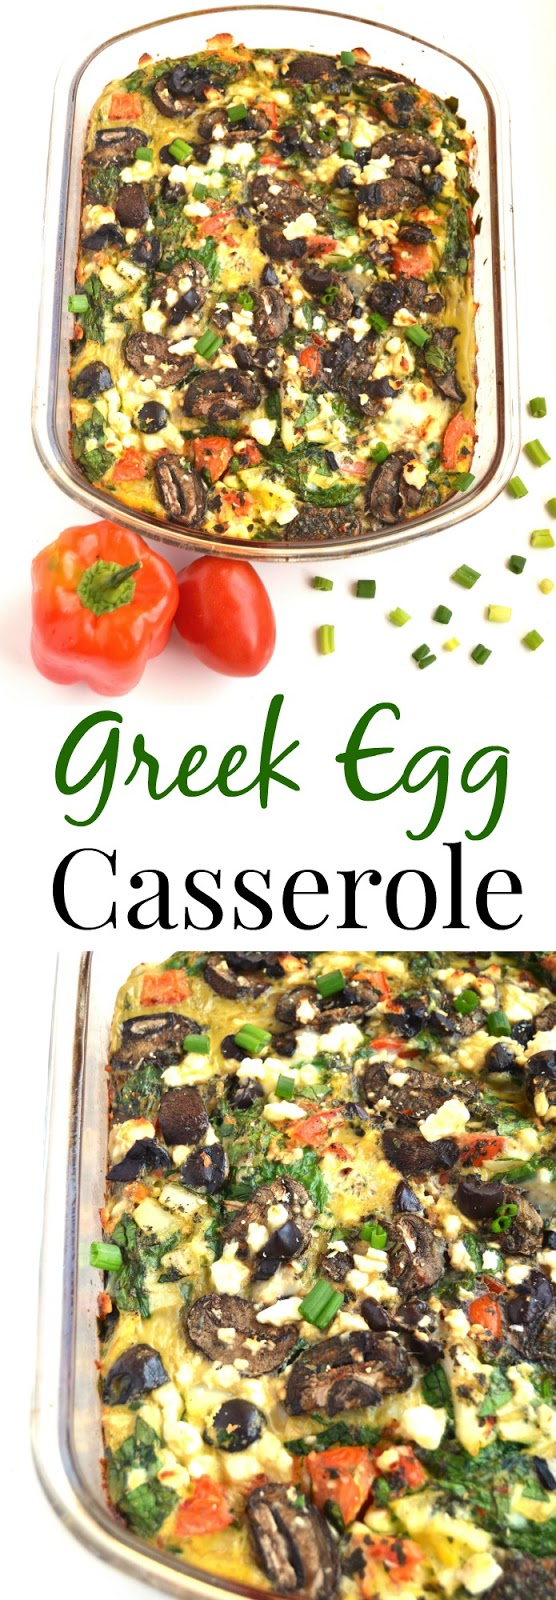 This Greek Egg Casserole combines all your favorite Greek flavors including feta cheese, kalamata olives, tomatoes, onions, peppers and more! www.nutritionistreviews.com